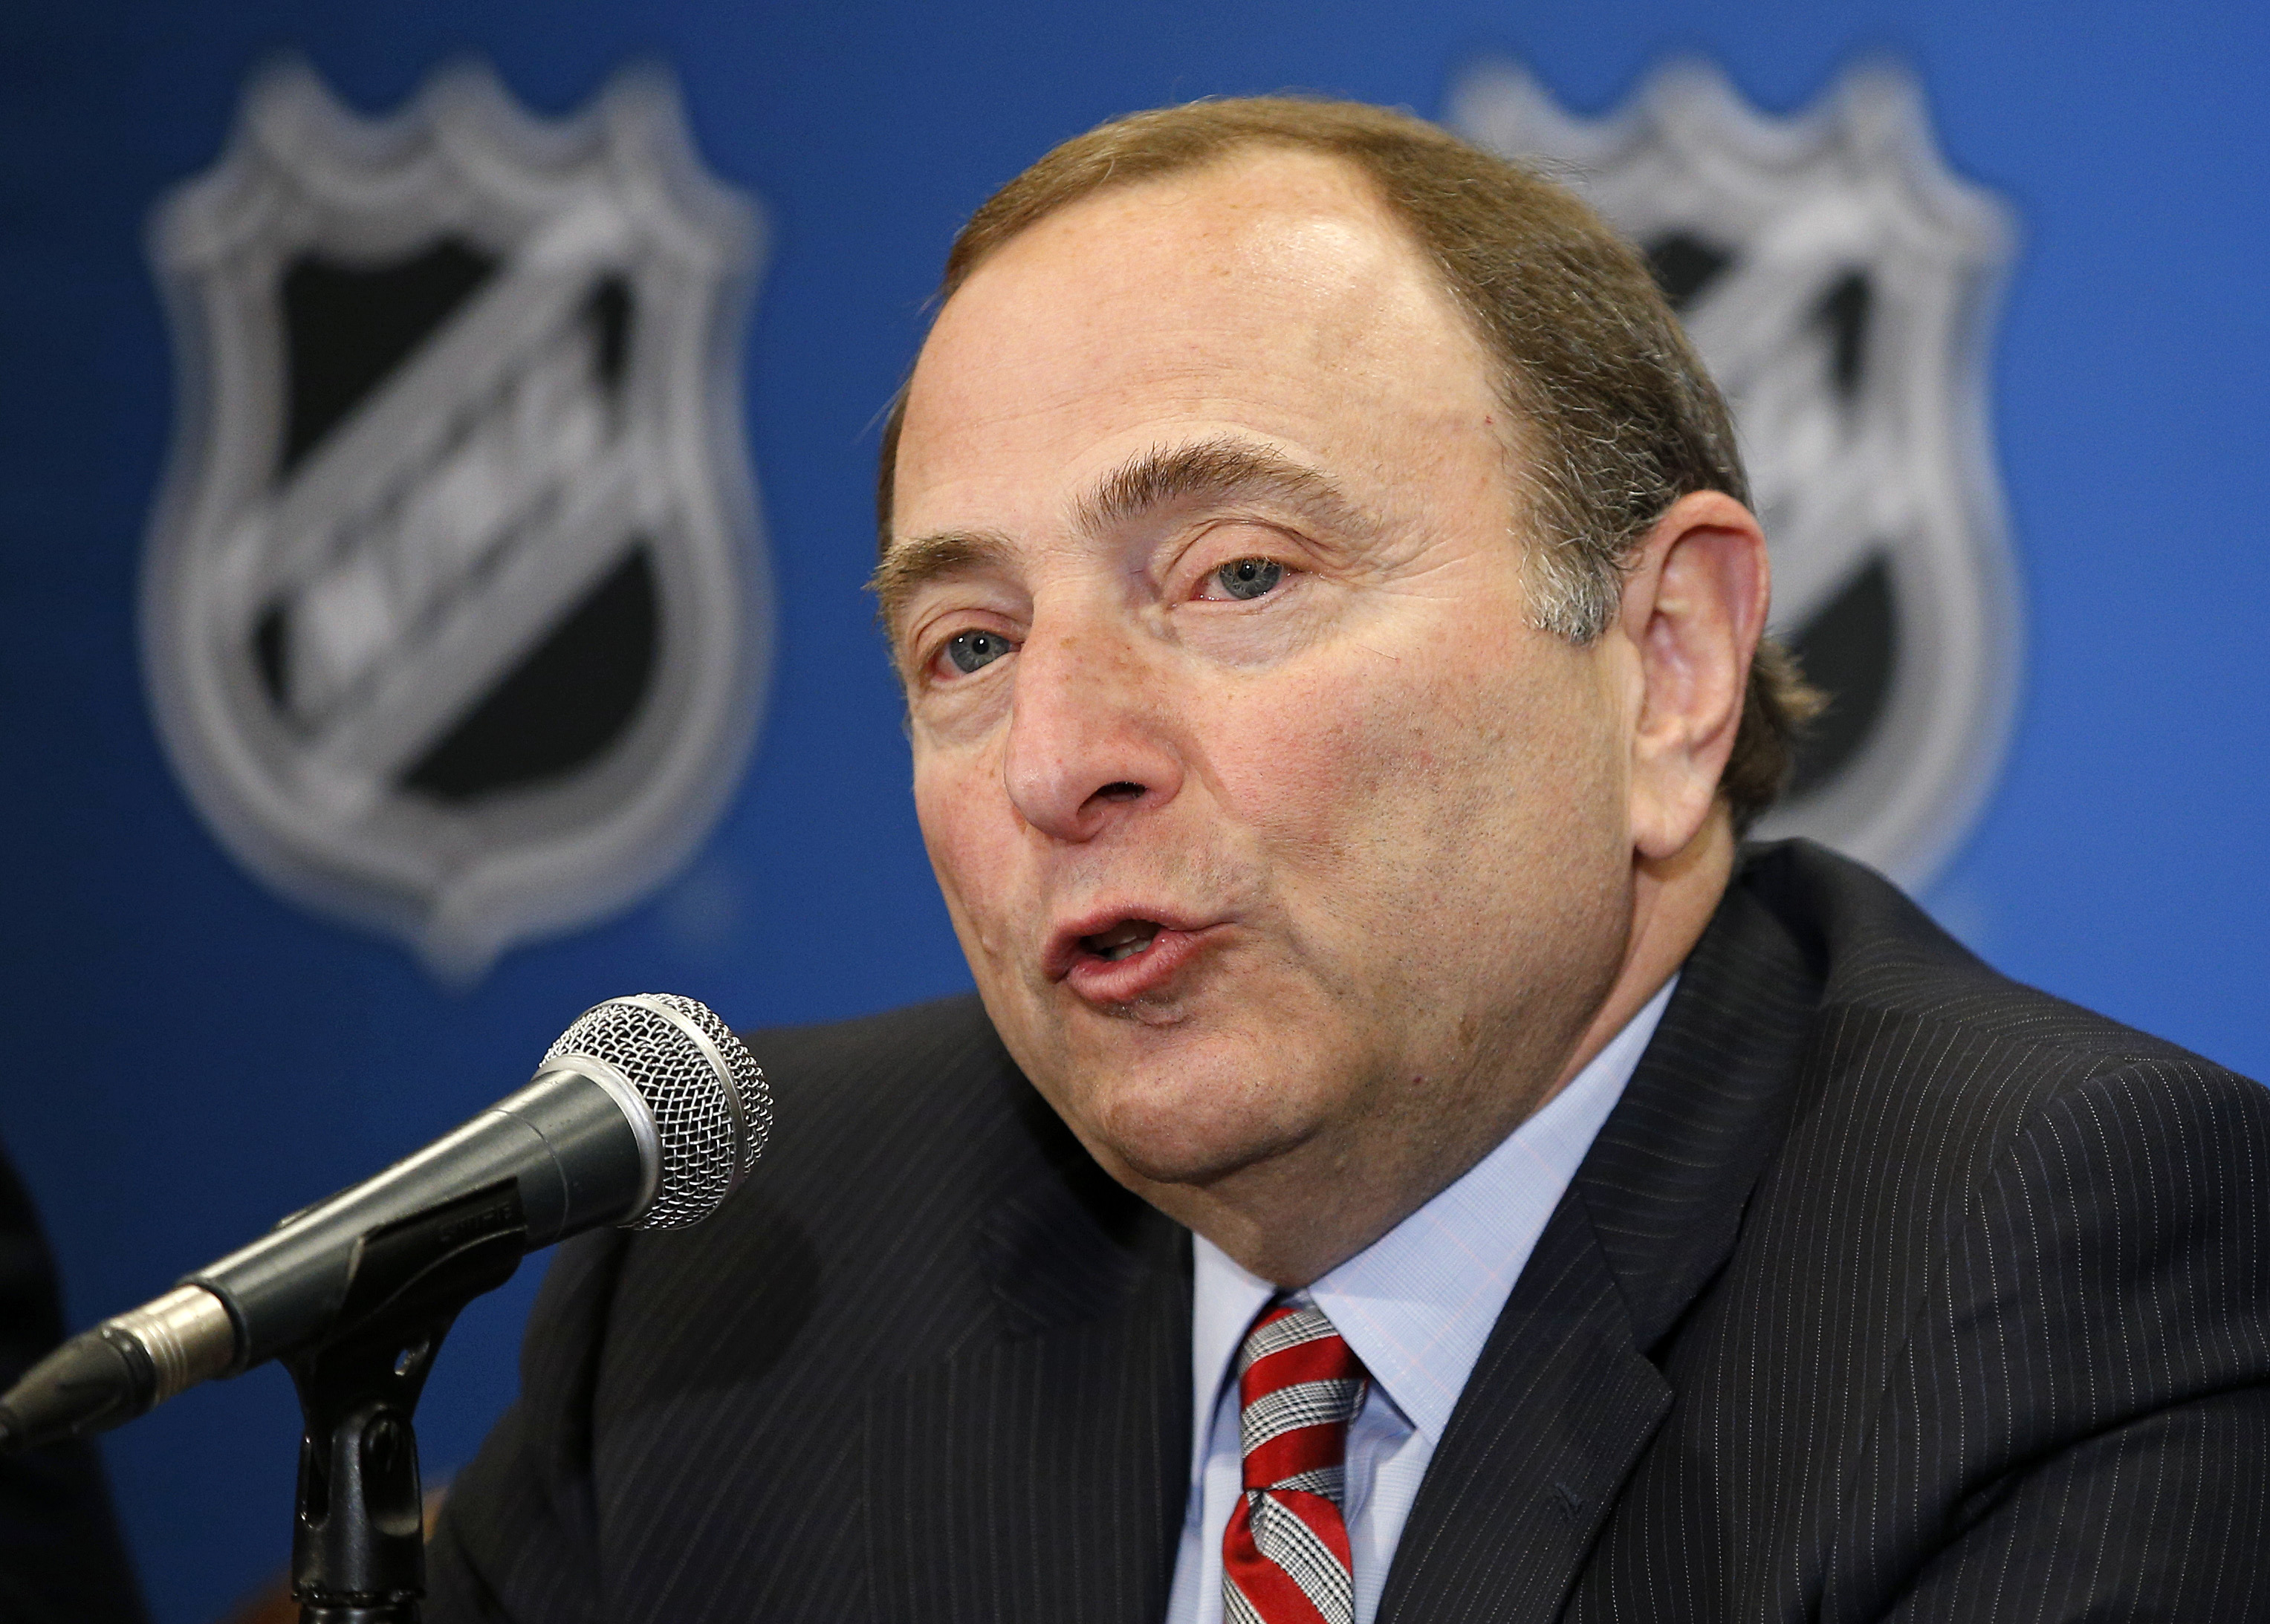 NHL commissioner Gary Bettman speaks at a news conference before the NHL Awards show Wednesday, June 24, 2015, in Las Vegas. The NHL is officially exploring expansion. The league is opening a formal expansion review process to consider adding new franchis